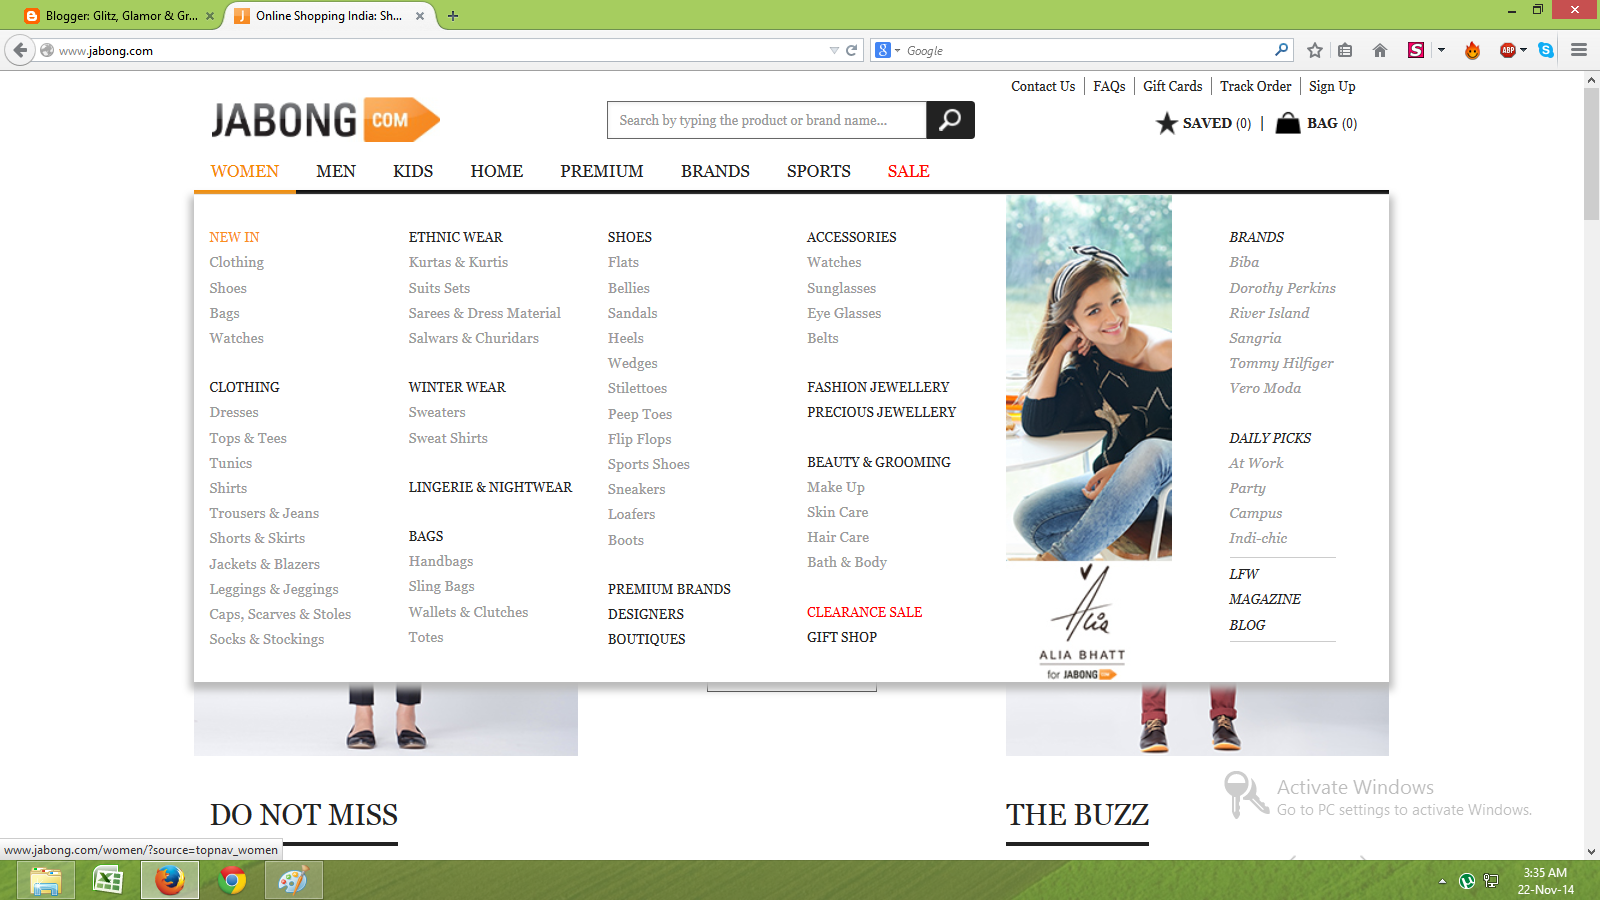 Online Shopping Site Review - Jabong.com